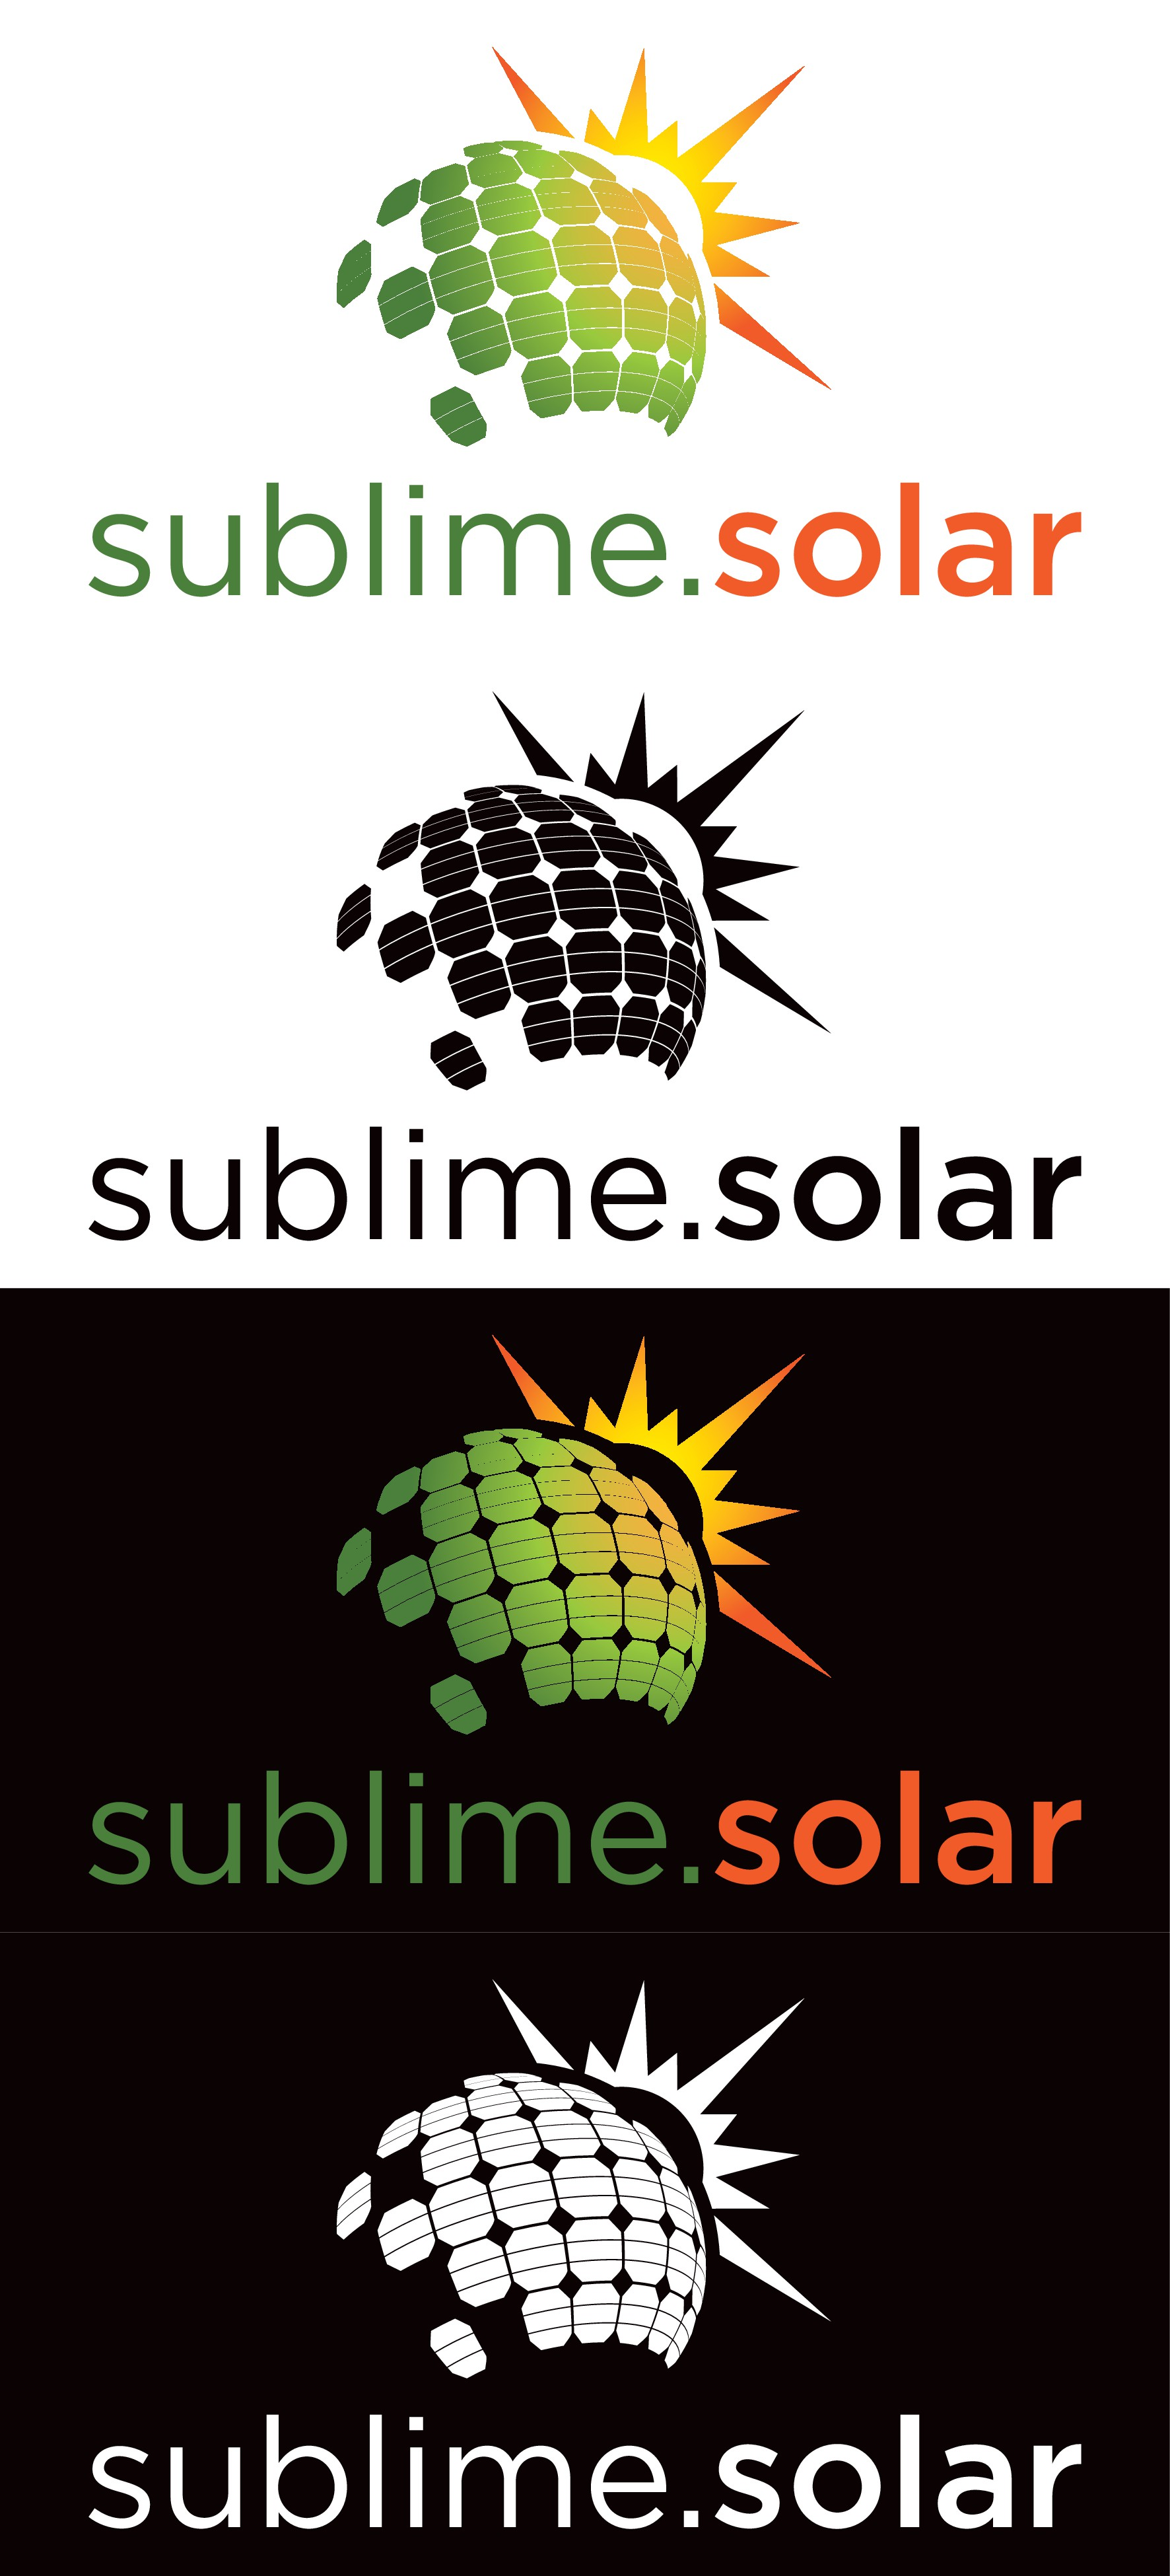 time to clean up this planet! lets launch sublime.solar